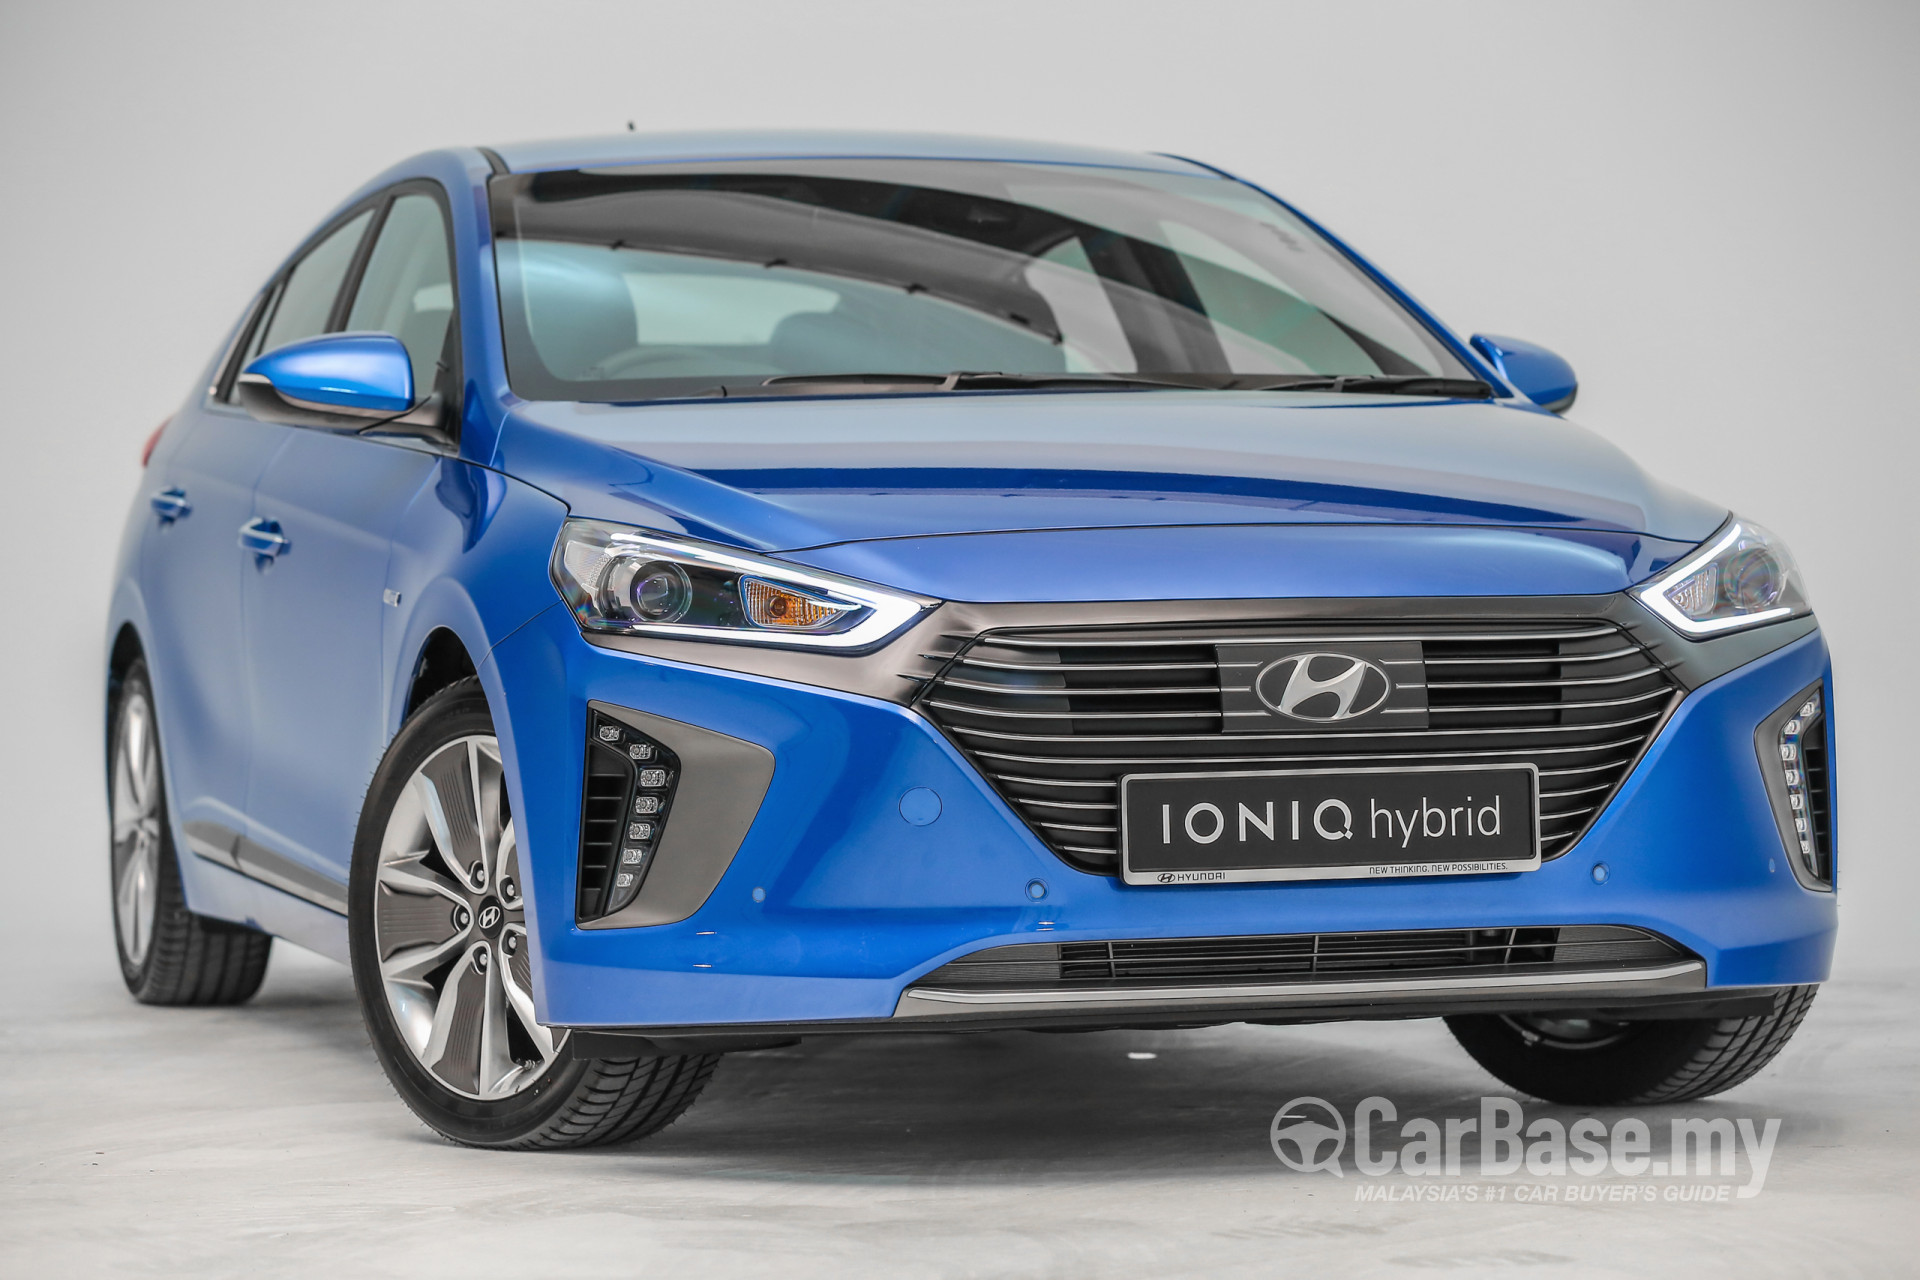 hyundai ioniq ae 2016 exterior image 34397 in malaysia reviews specs prices. Black Bedroom Furniture Sets. Home Design Ideas